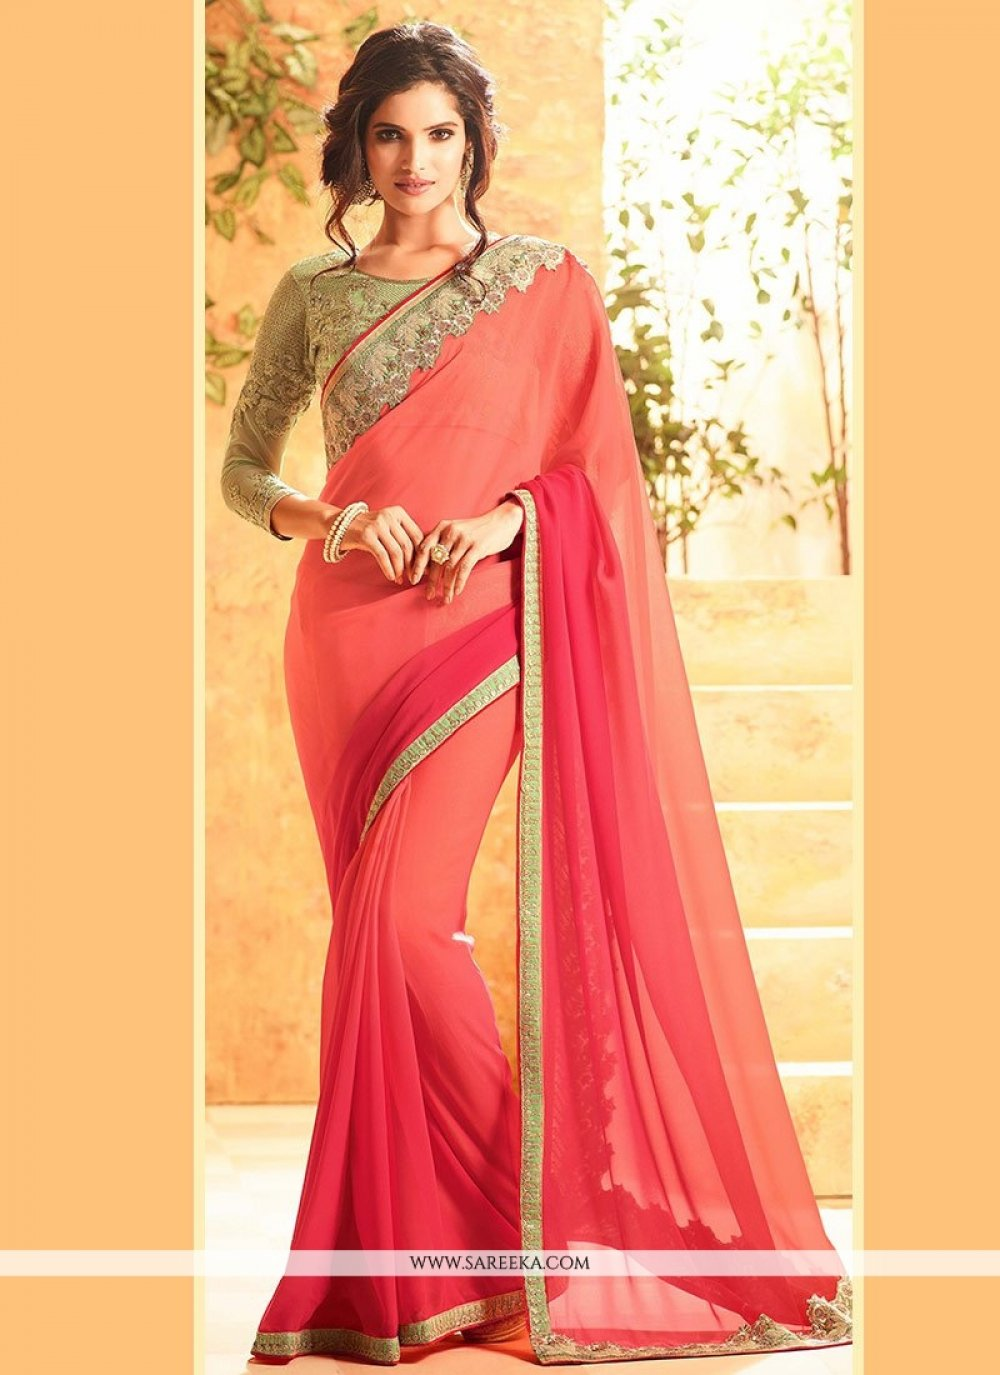 Faux Georgette Peach and Pink Shaded Saree